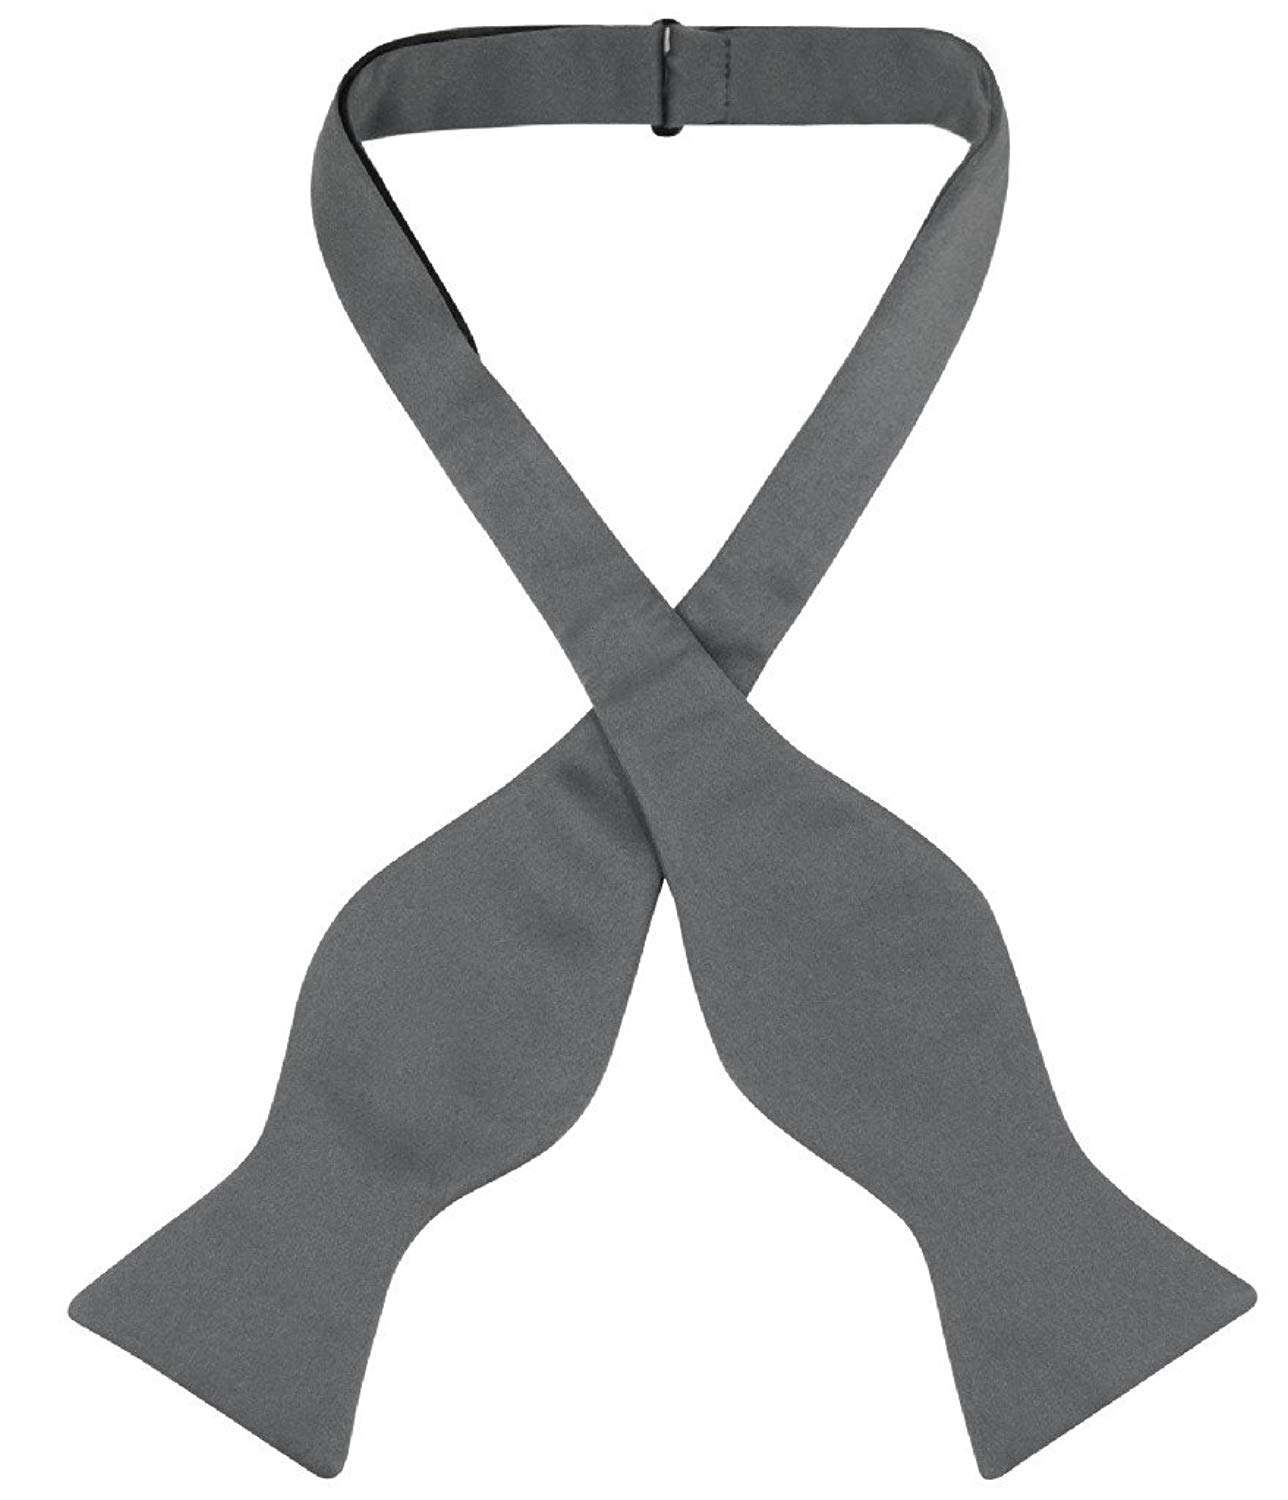 Vesuvio Napoli SELF TIE Bow Tie Solid CHARCOAL GREY Color Men's BowTie